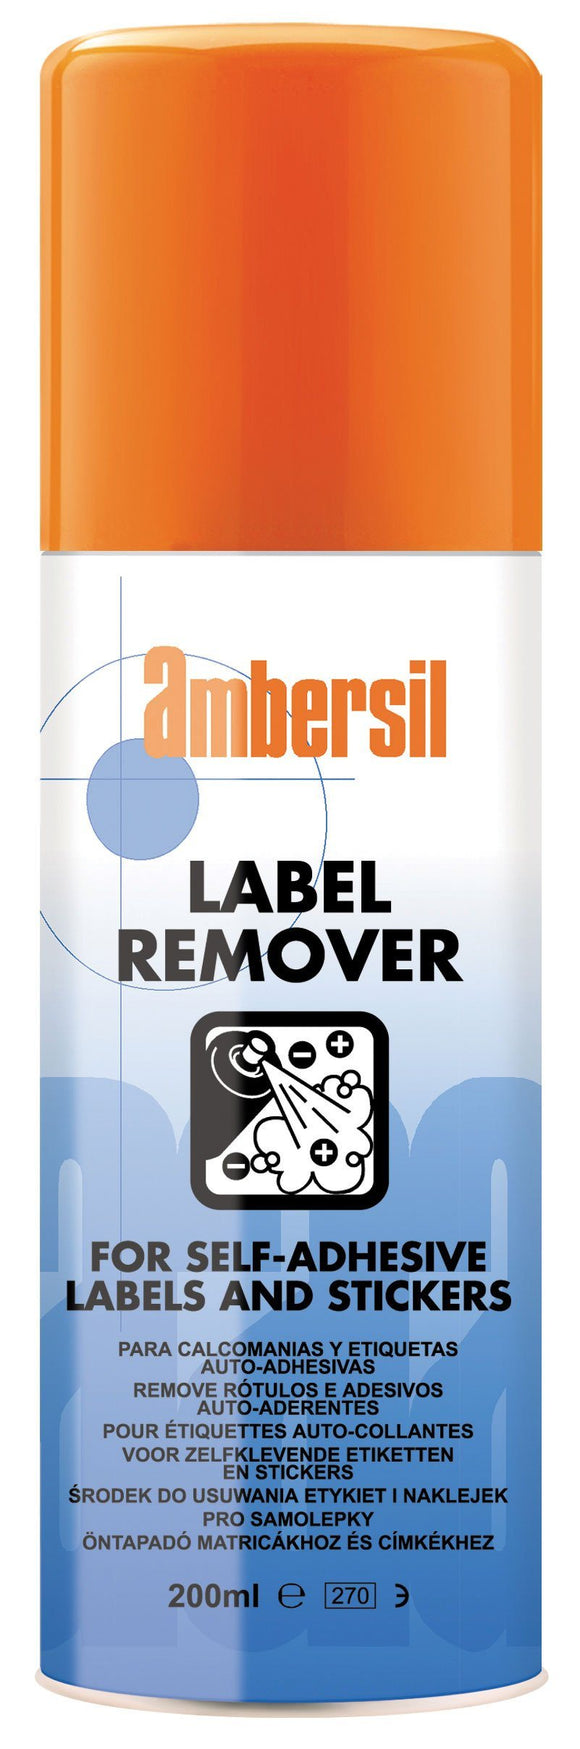 Mould_Sprays_and_lubricants - Label Remover Spray